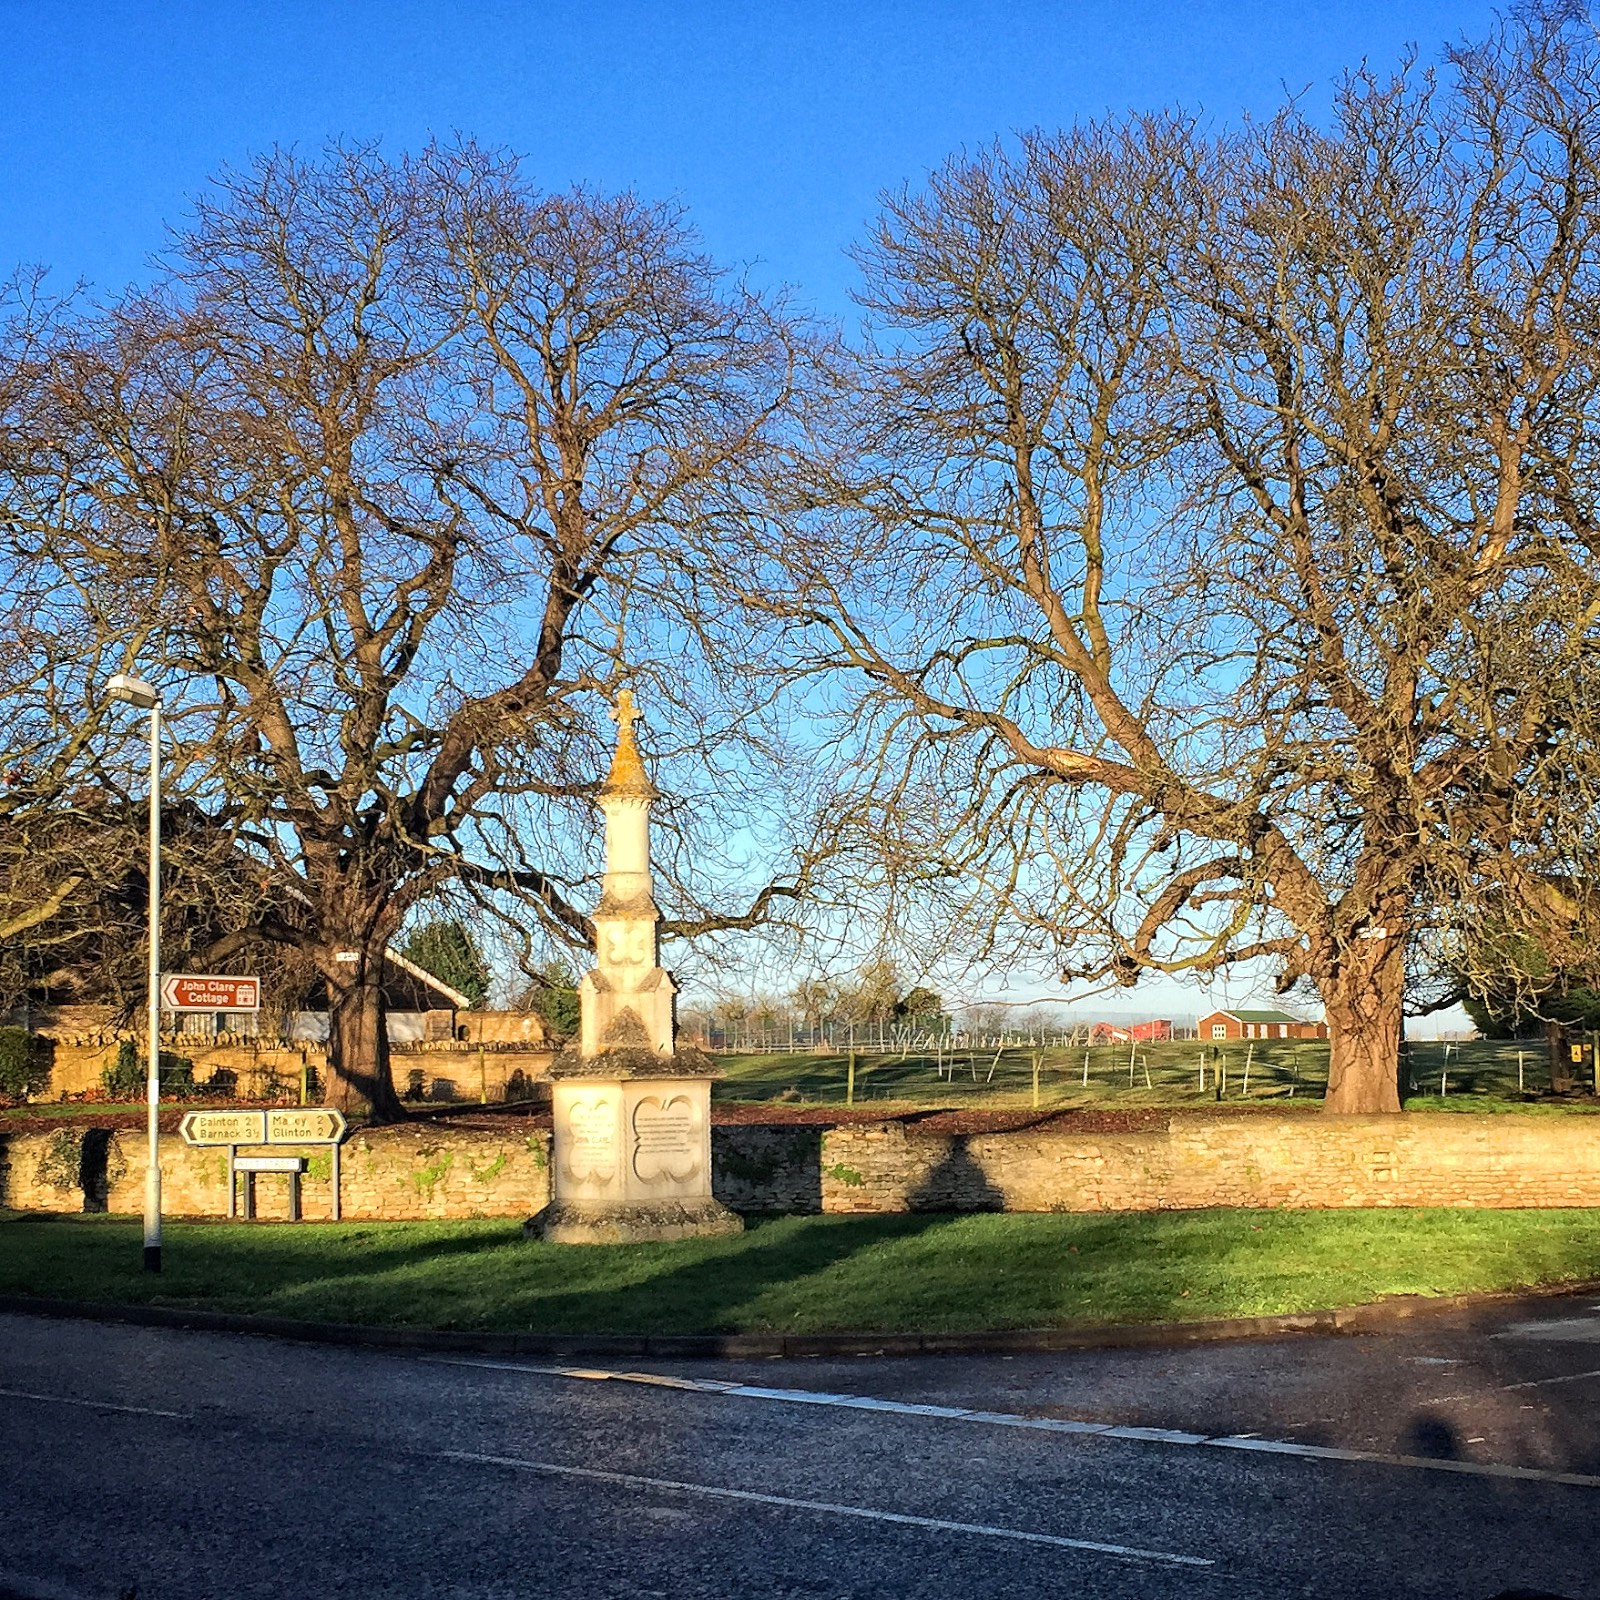 The Clare Memorial in Helpston.